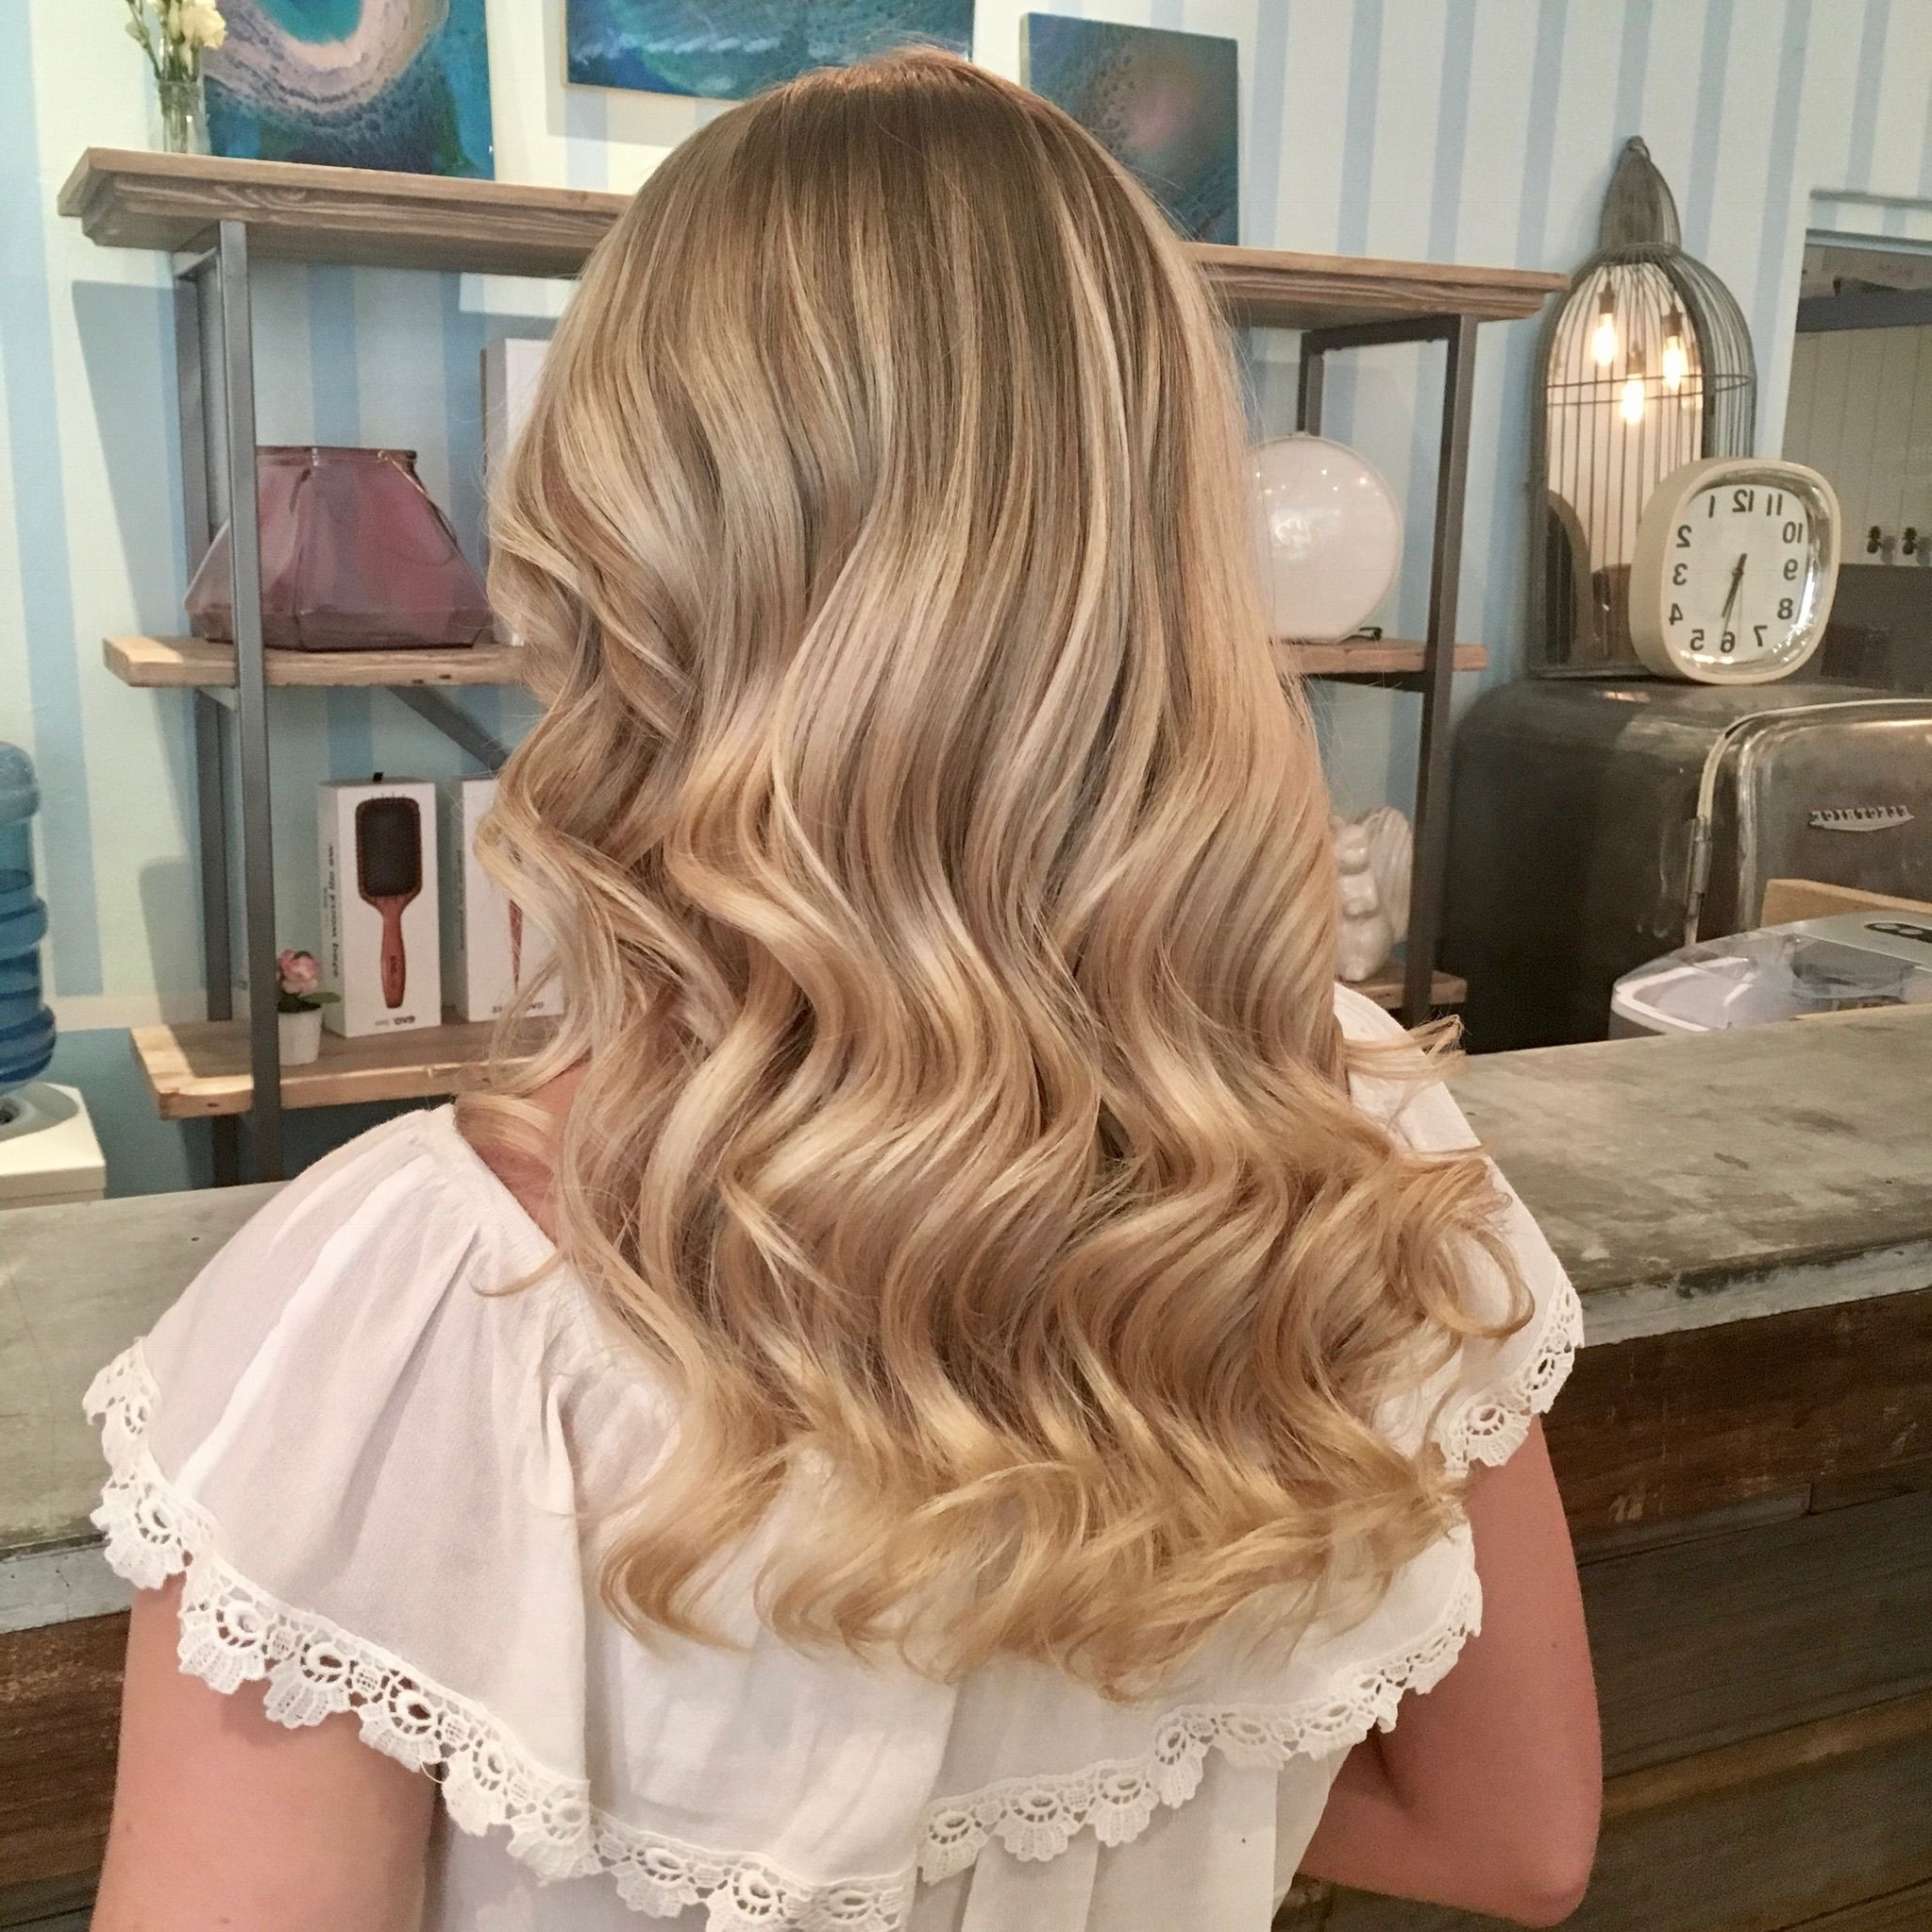 Blonde Blondes Bright Blondes Creamy Blondes Waves Style Ashy Within Latest Creamy Blonde Waves With Bangs (View 8 of 20)